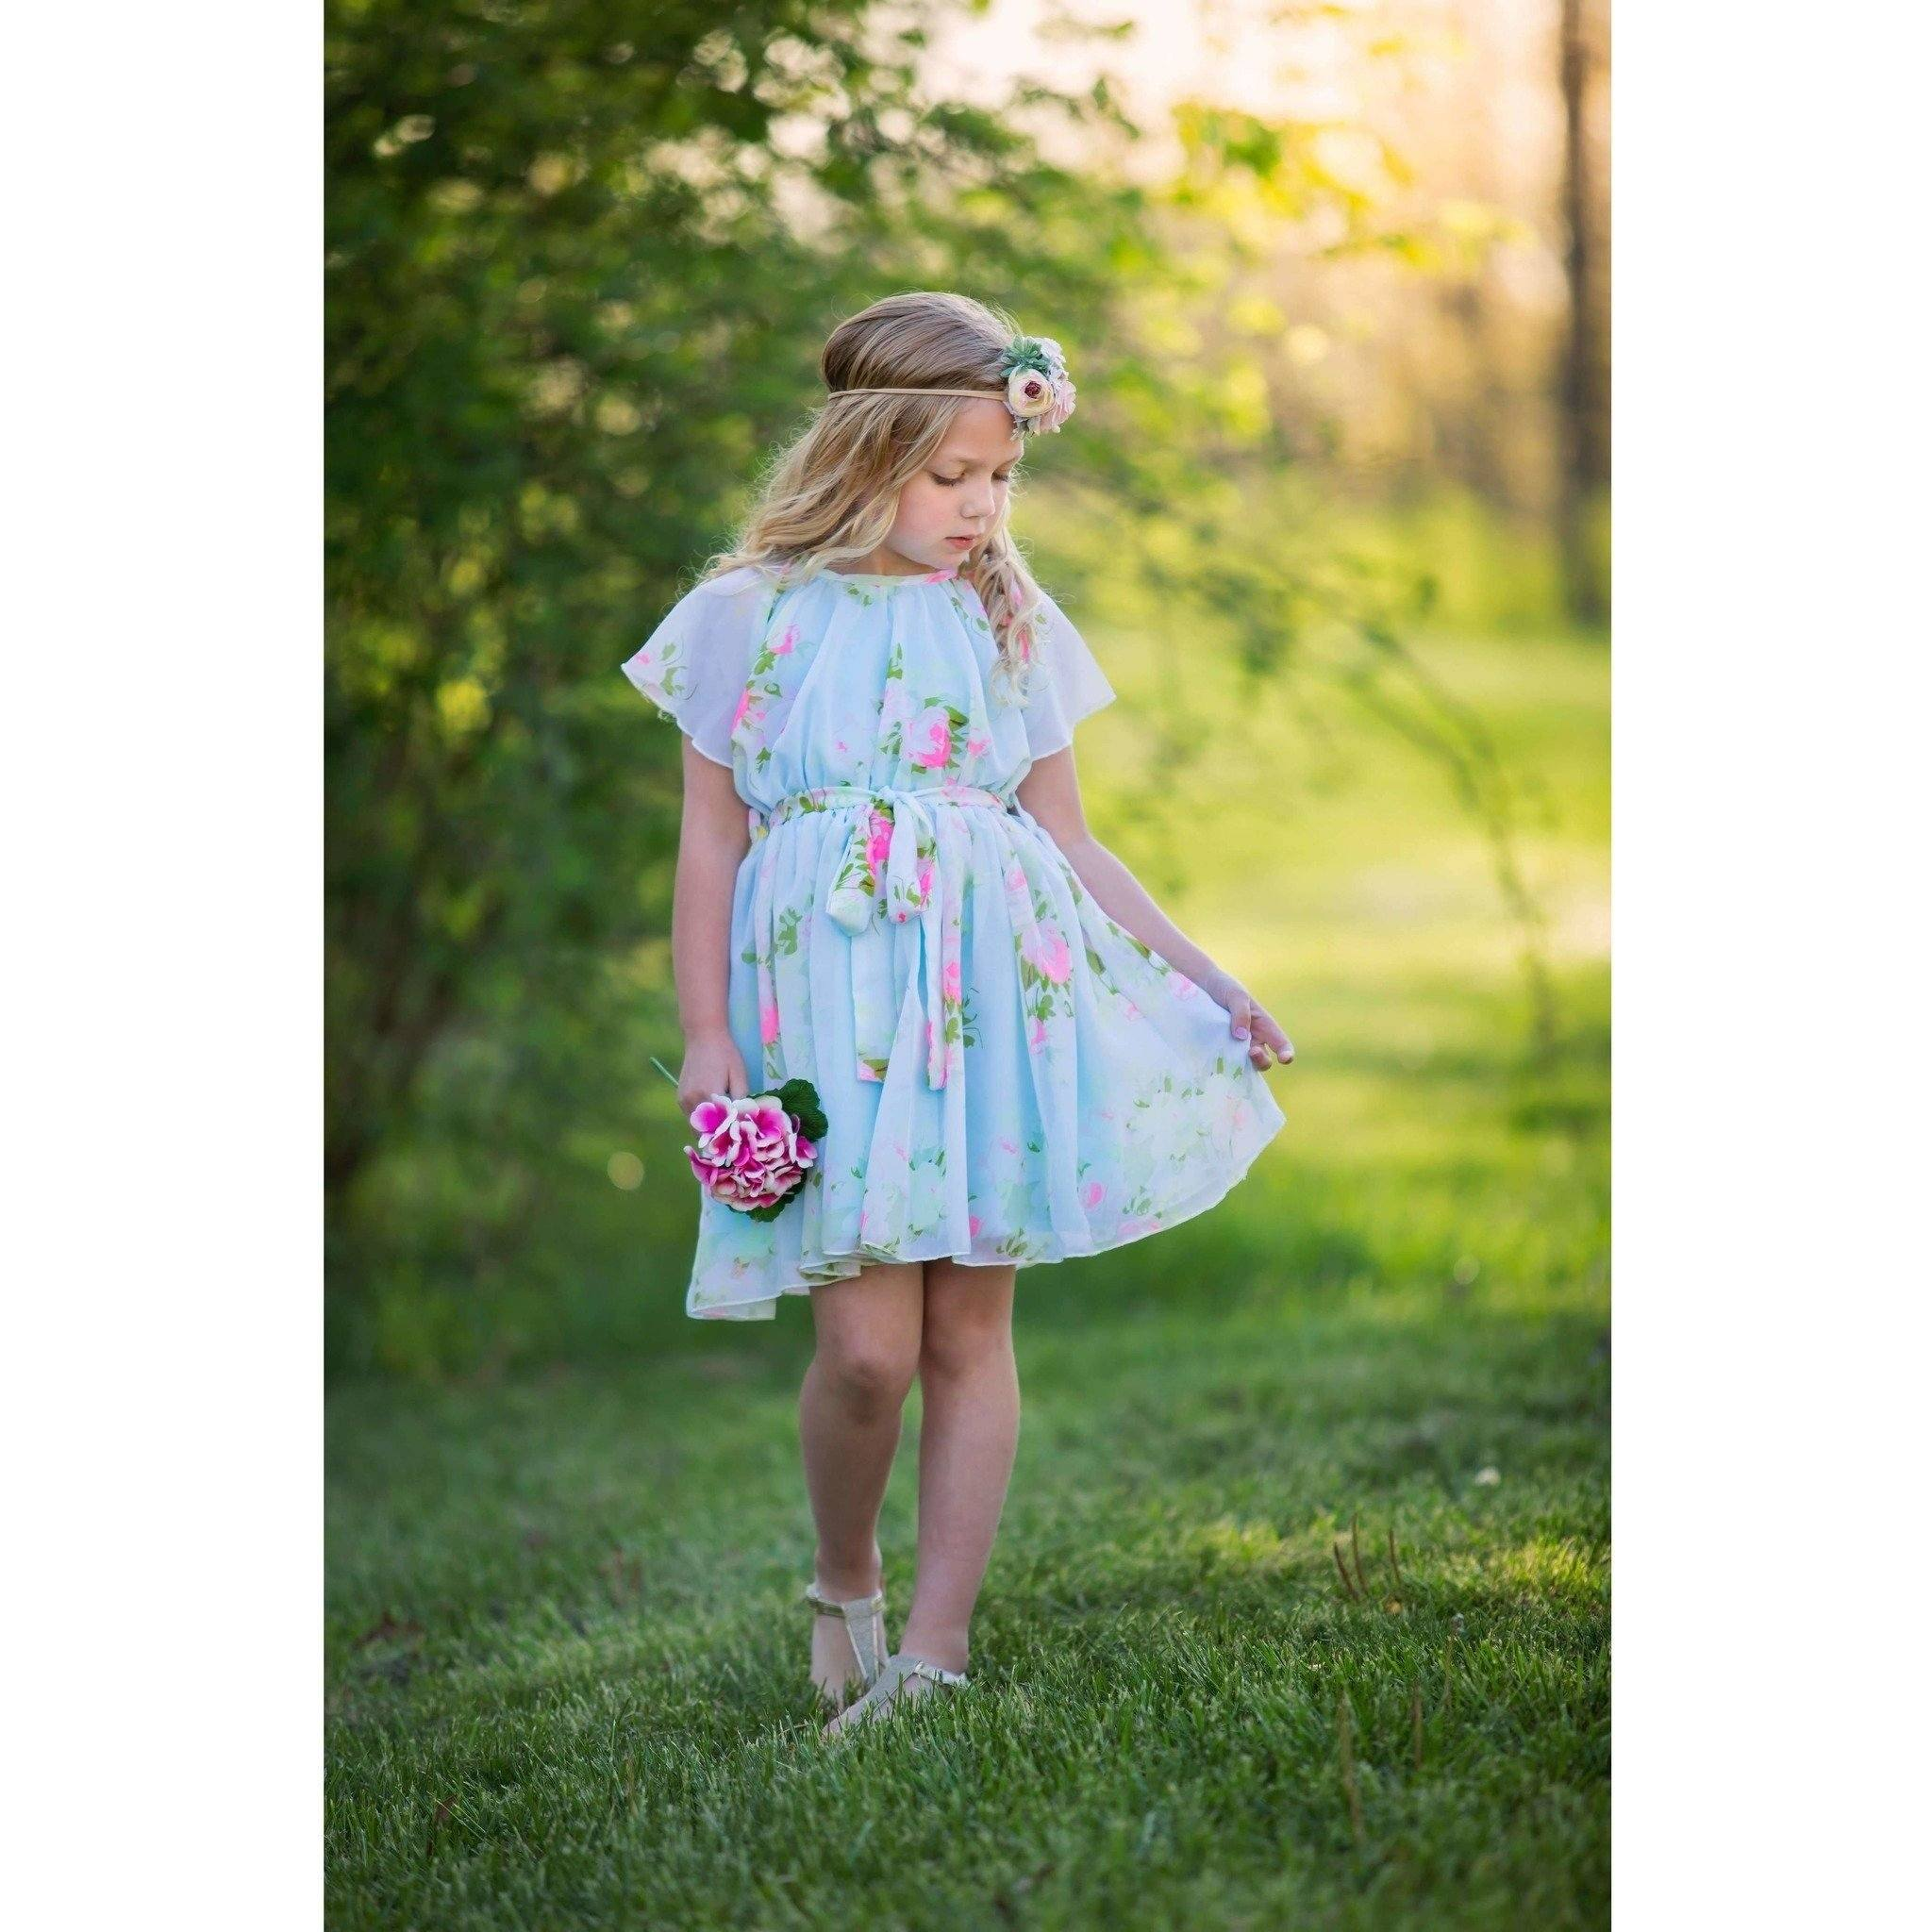 Adorable Essentials, Floral Chiffon Dress,Dresses,Adorable Essentials, LLC